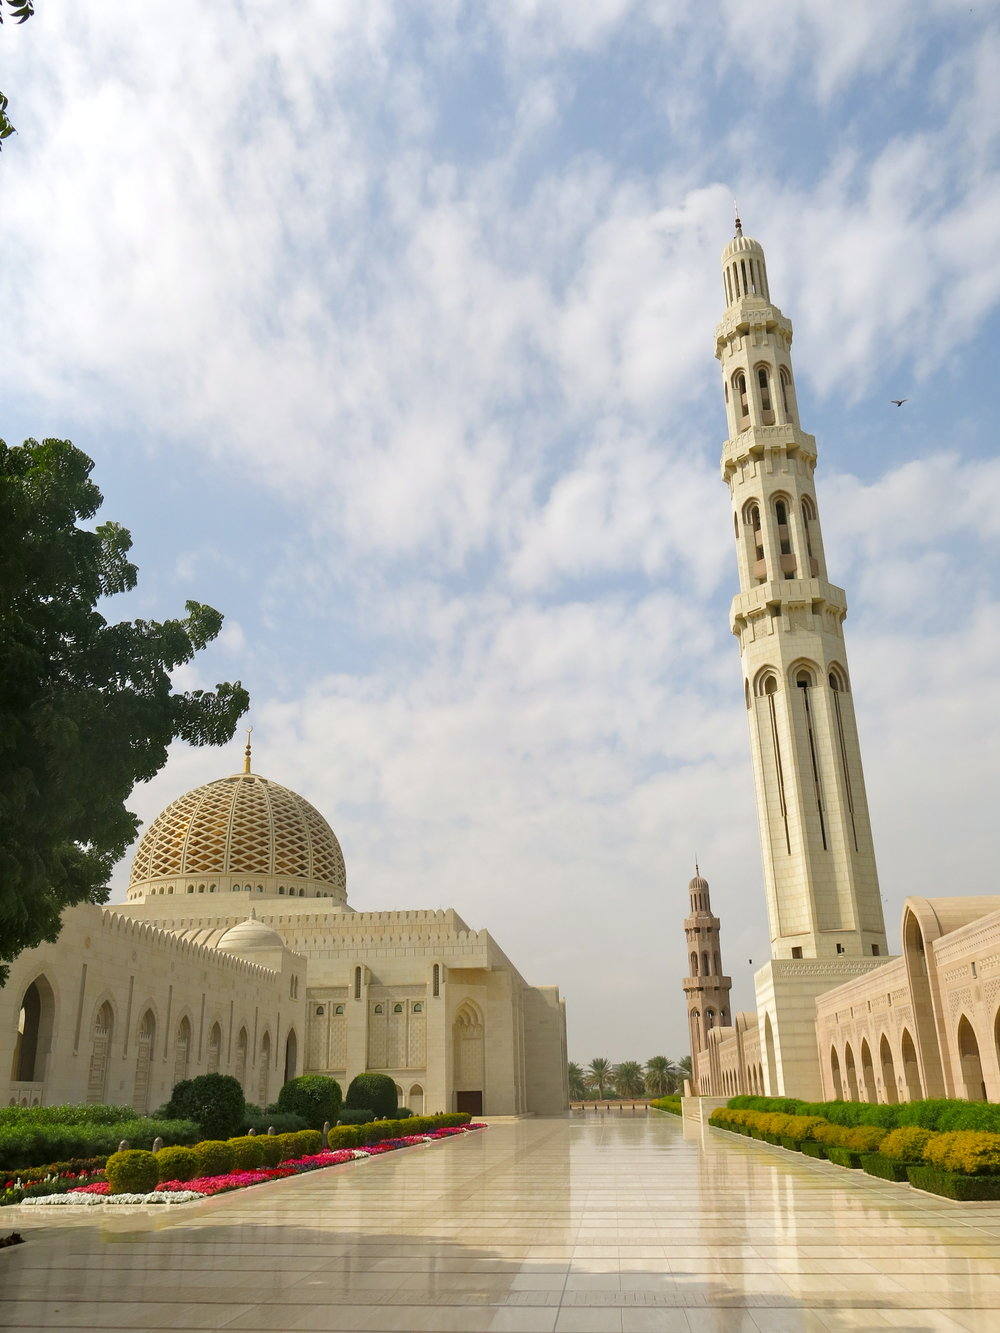 The main praying hall of the mosque with its dome (on the left)